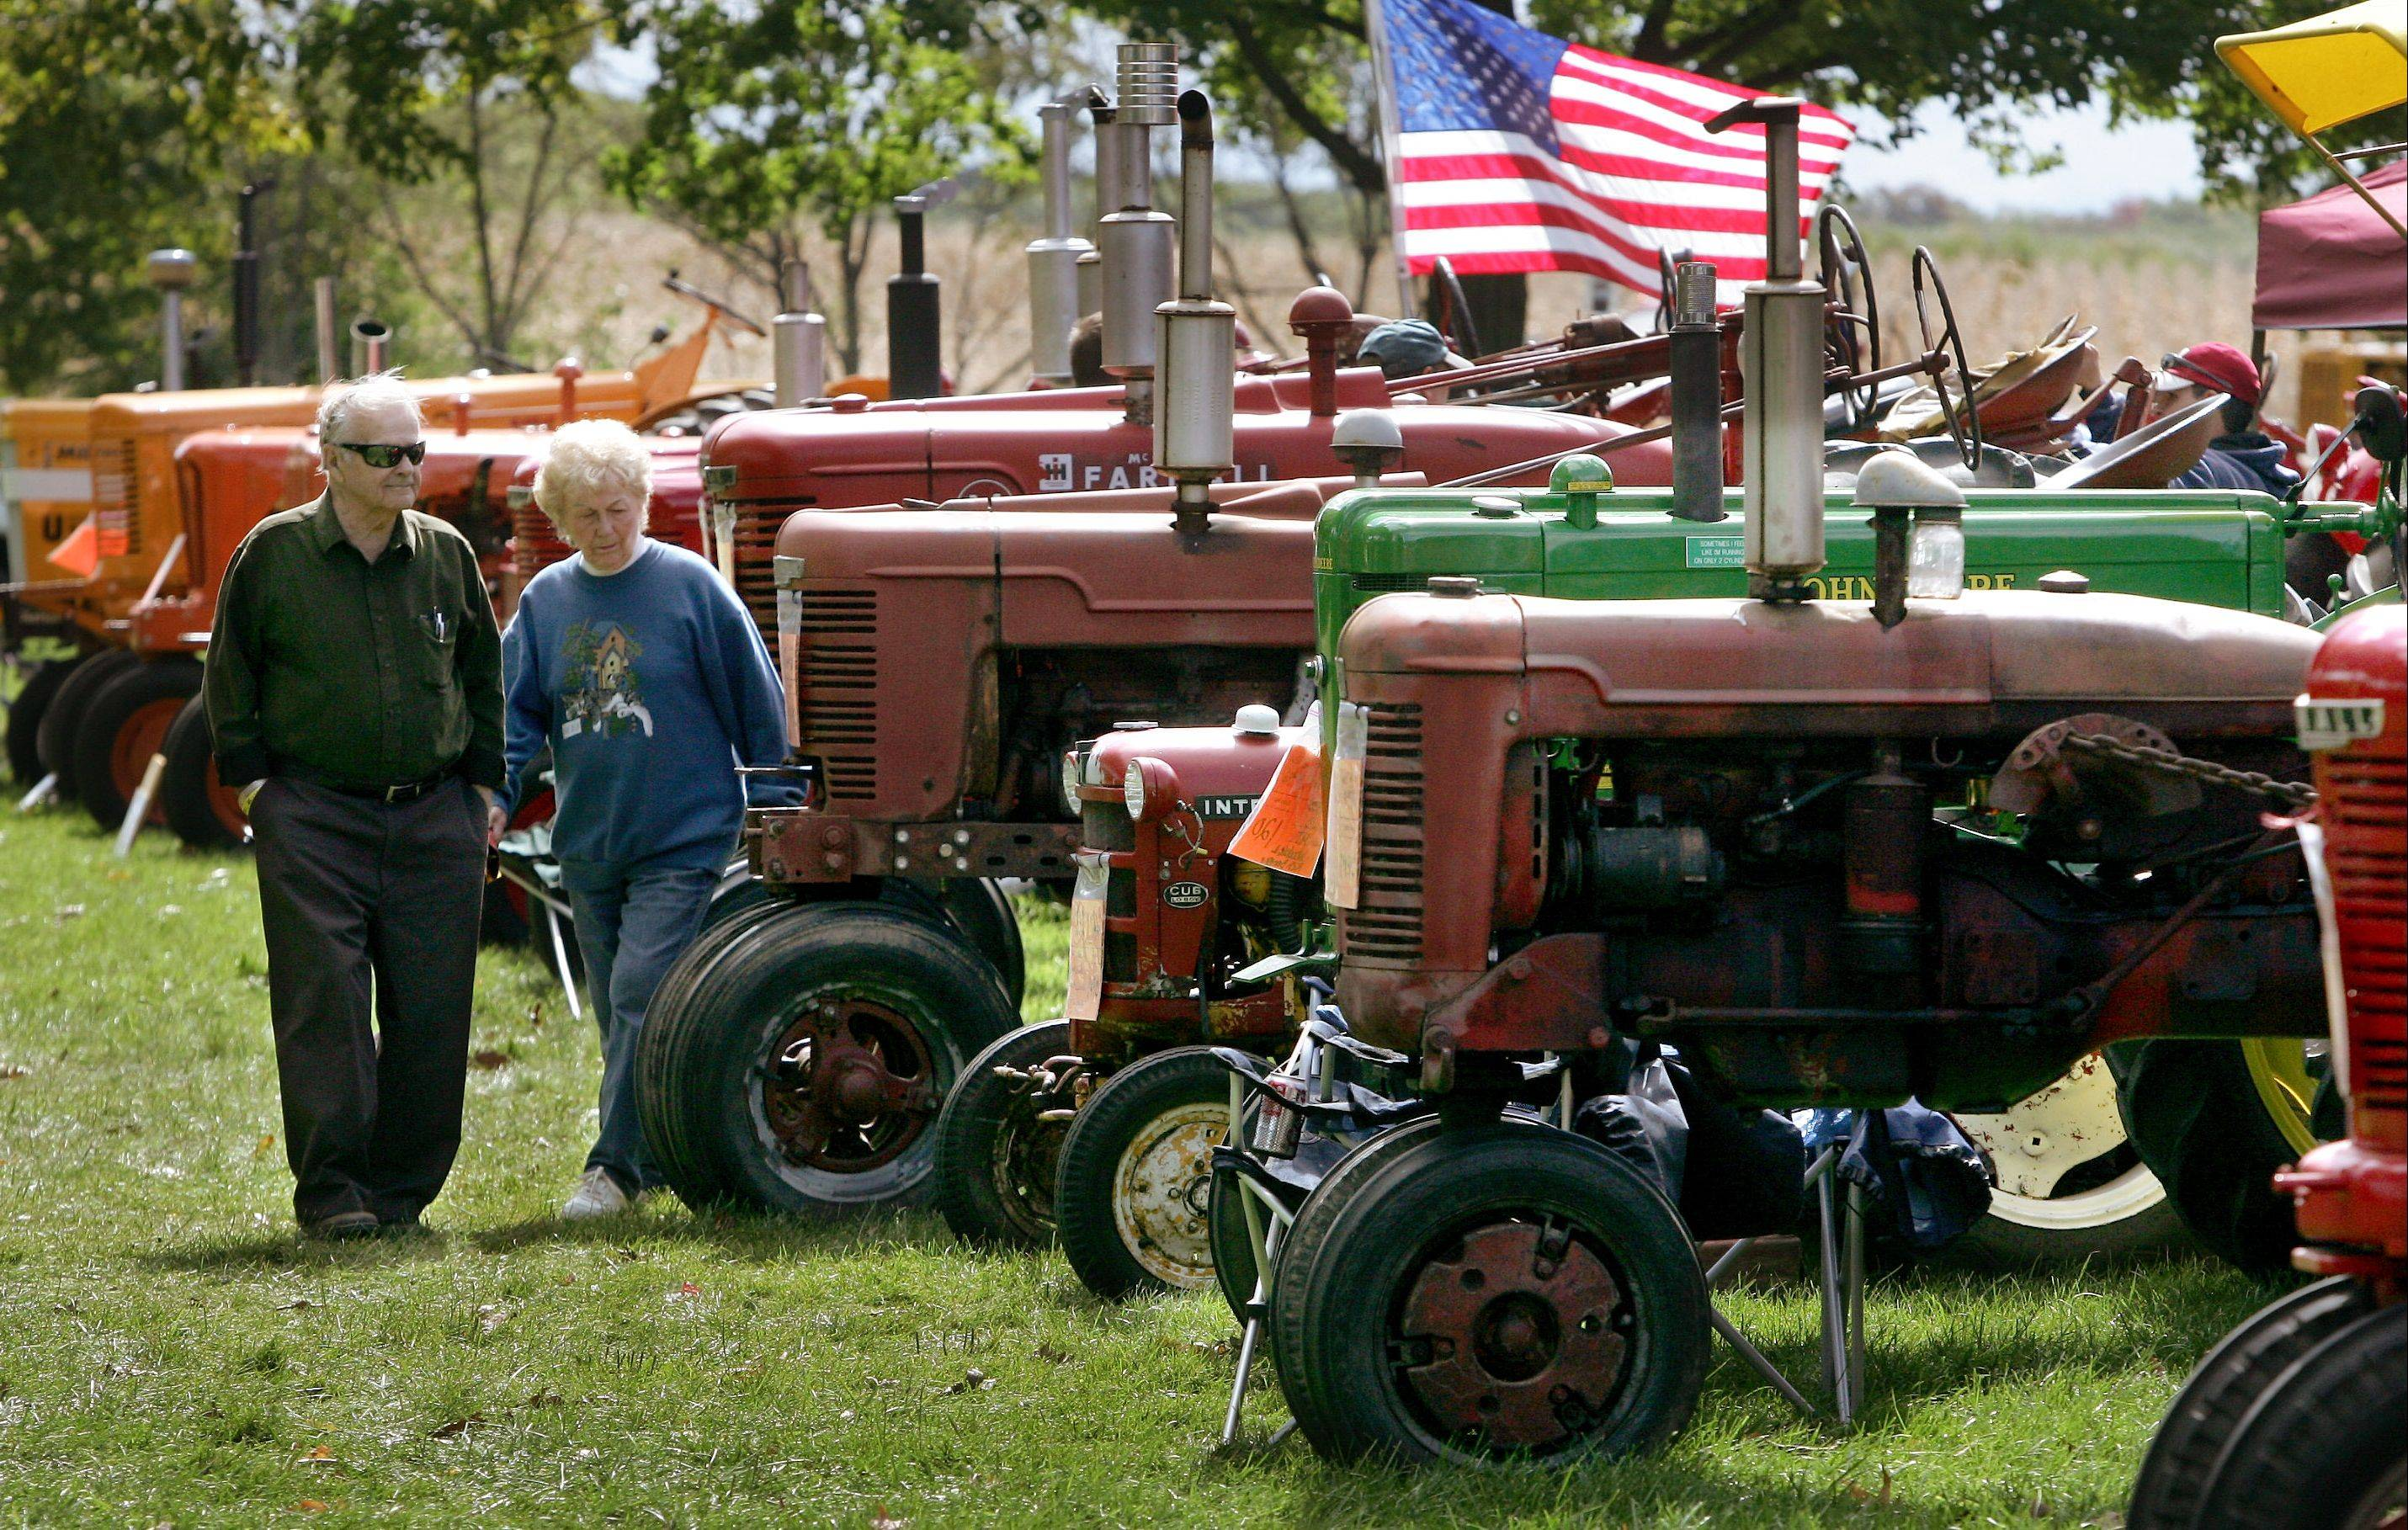 Old tractors and hundreds of other pieces of farm equipment will be on display during the Farm Heritage Festival at the Lakewood Forest Preserve near Wauconda Saturday and Sunday, Sept. 24-25.